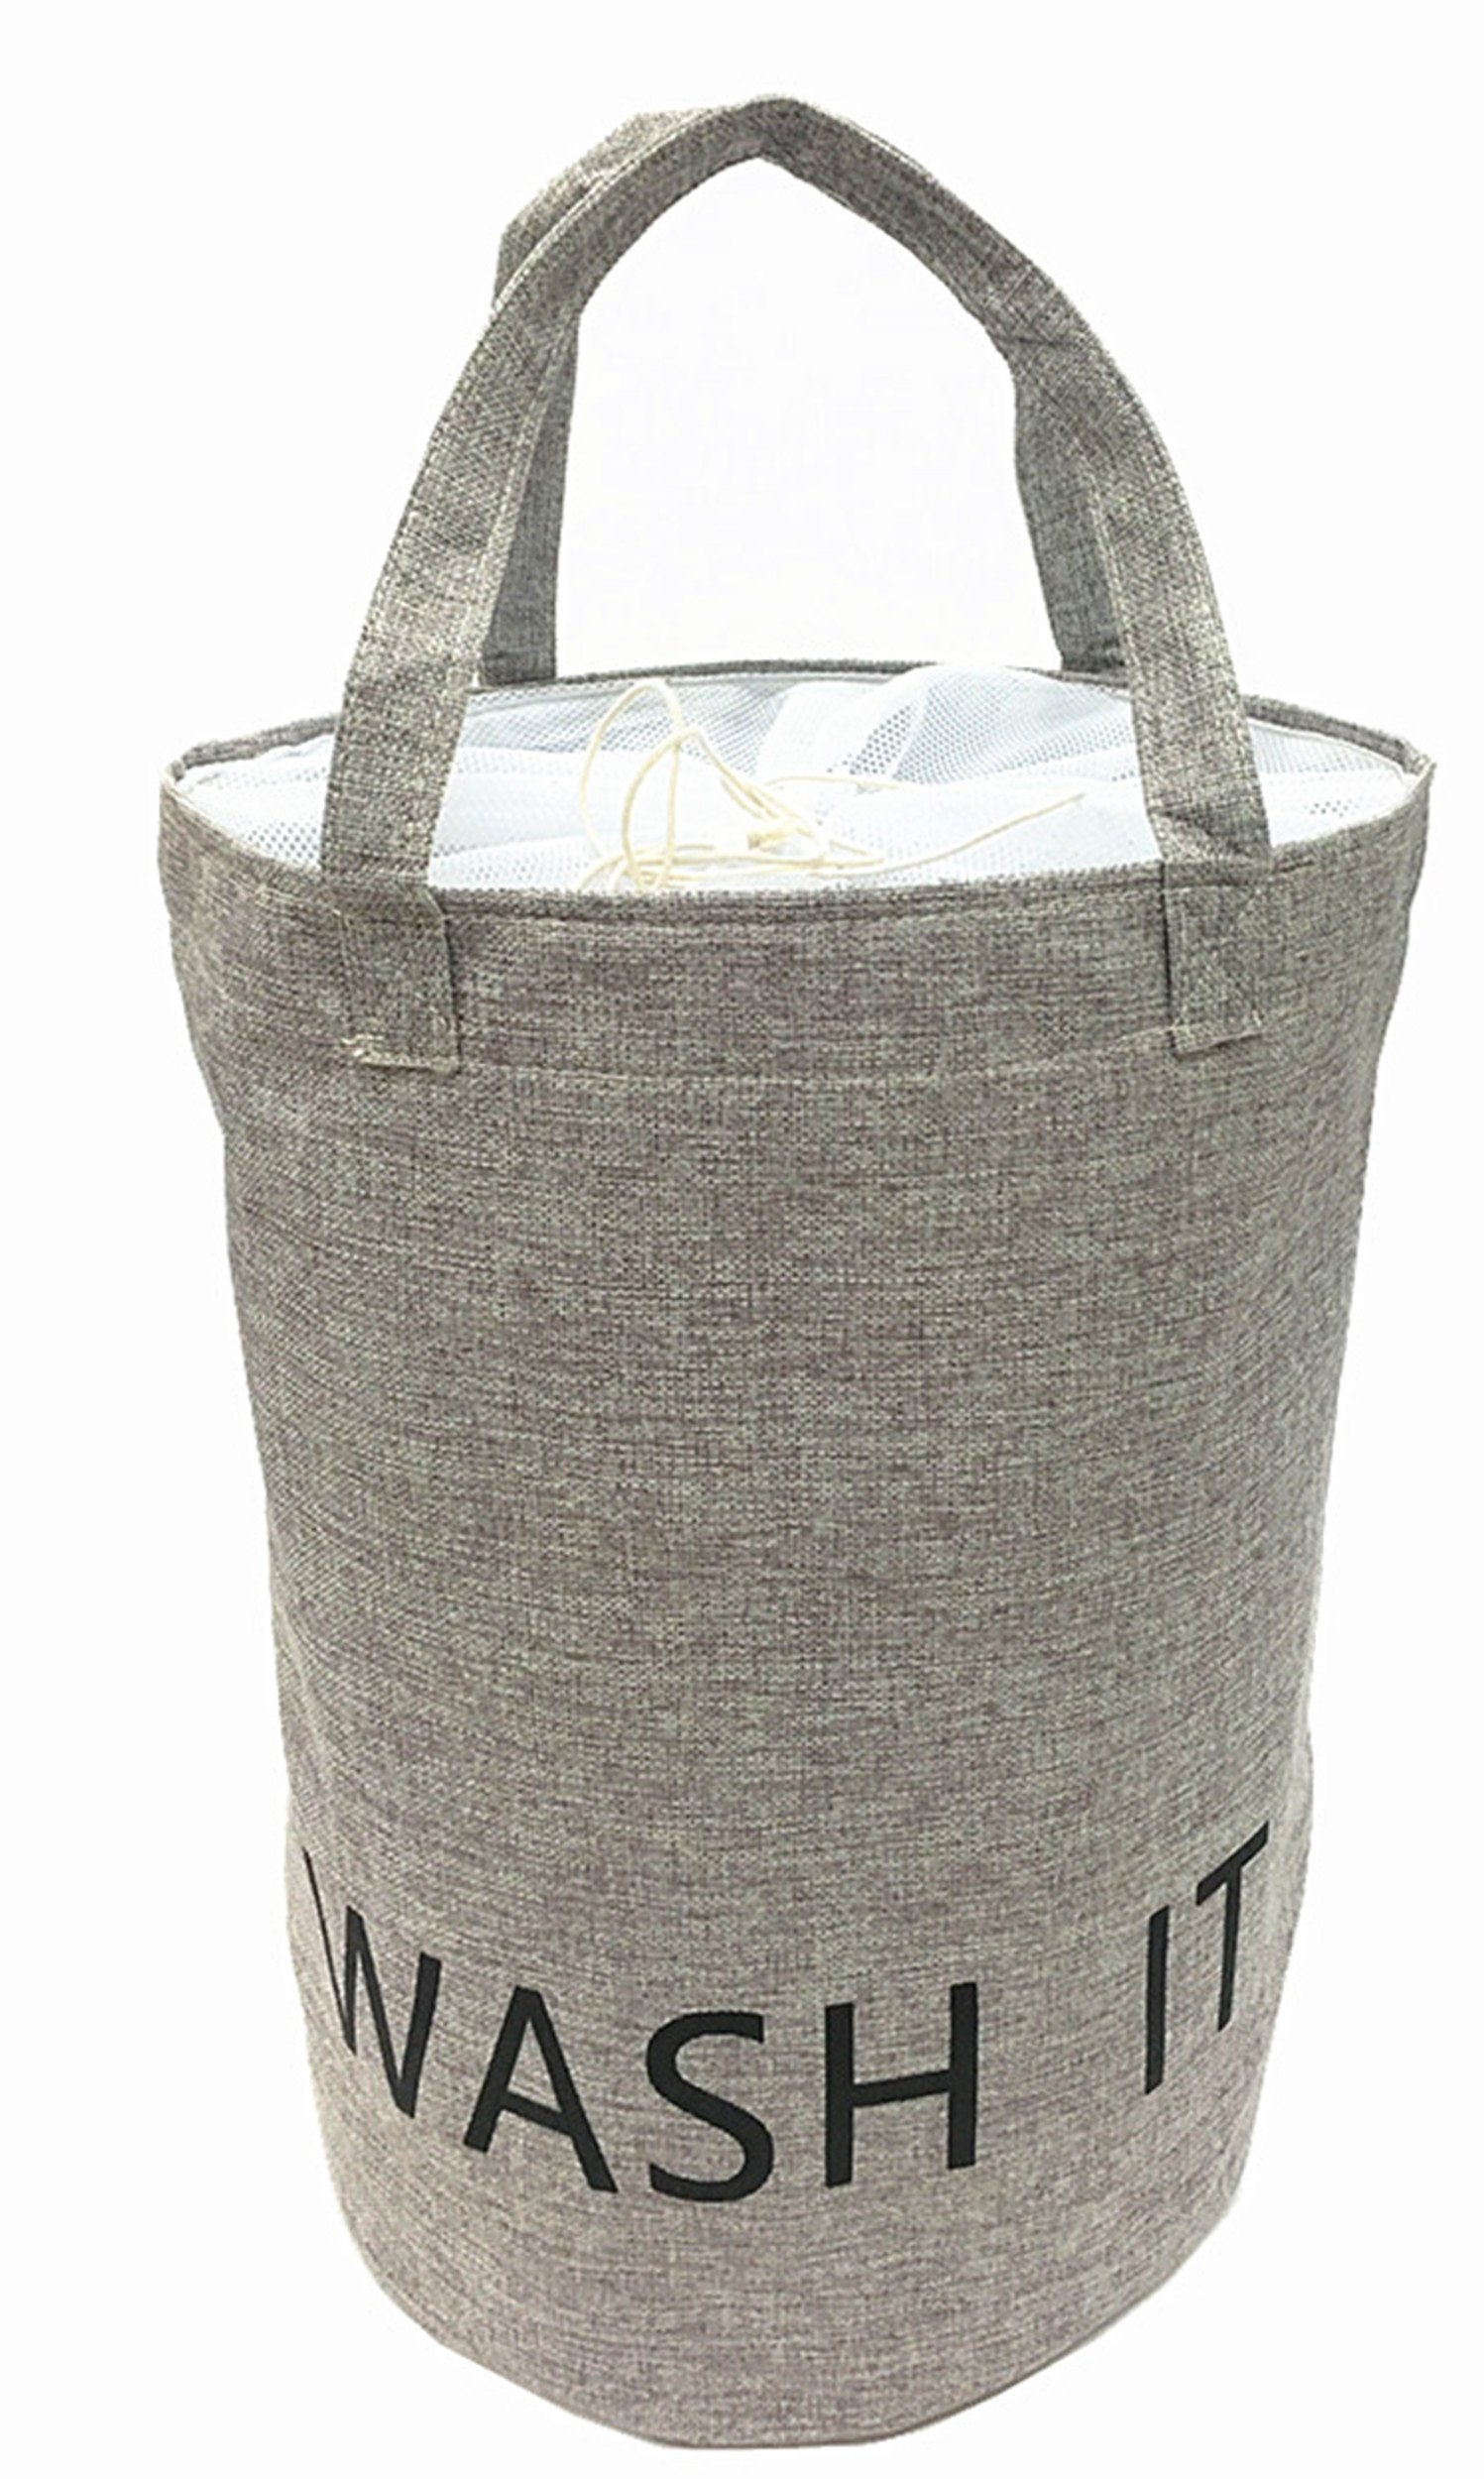 19.7 Inch Large Size 100% Natural Linen Laundry Hamper Laundry Basket With Long Handles Perfect for College Dorms,Kids Room & Bathroom(malange grey)